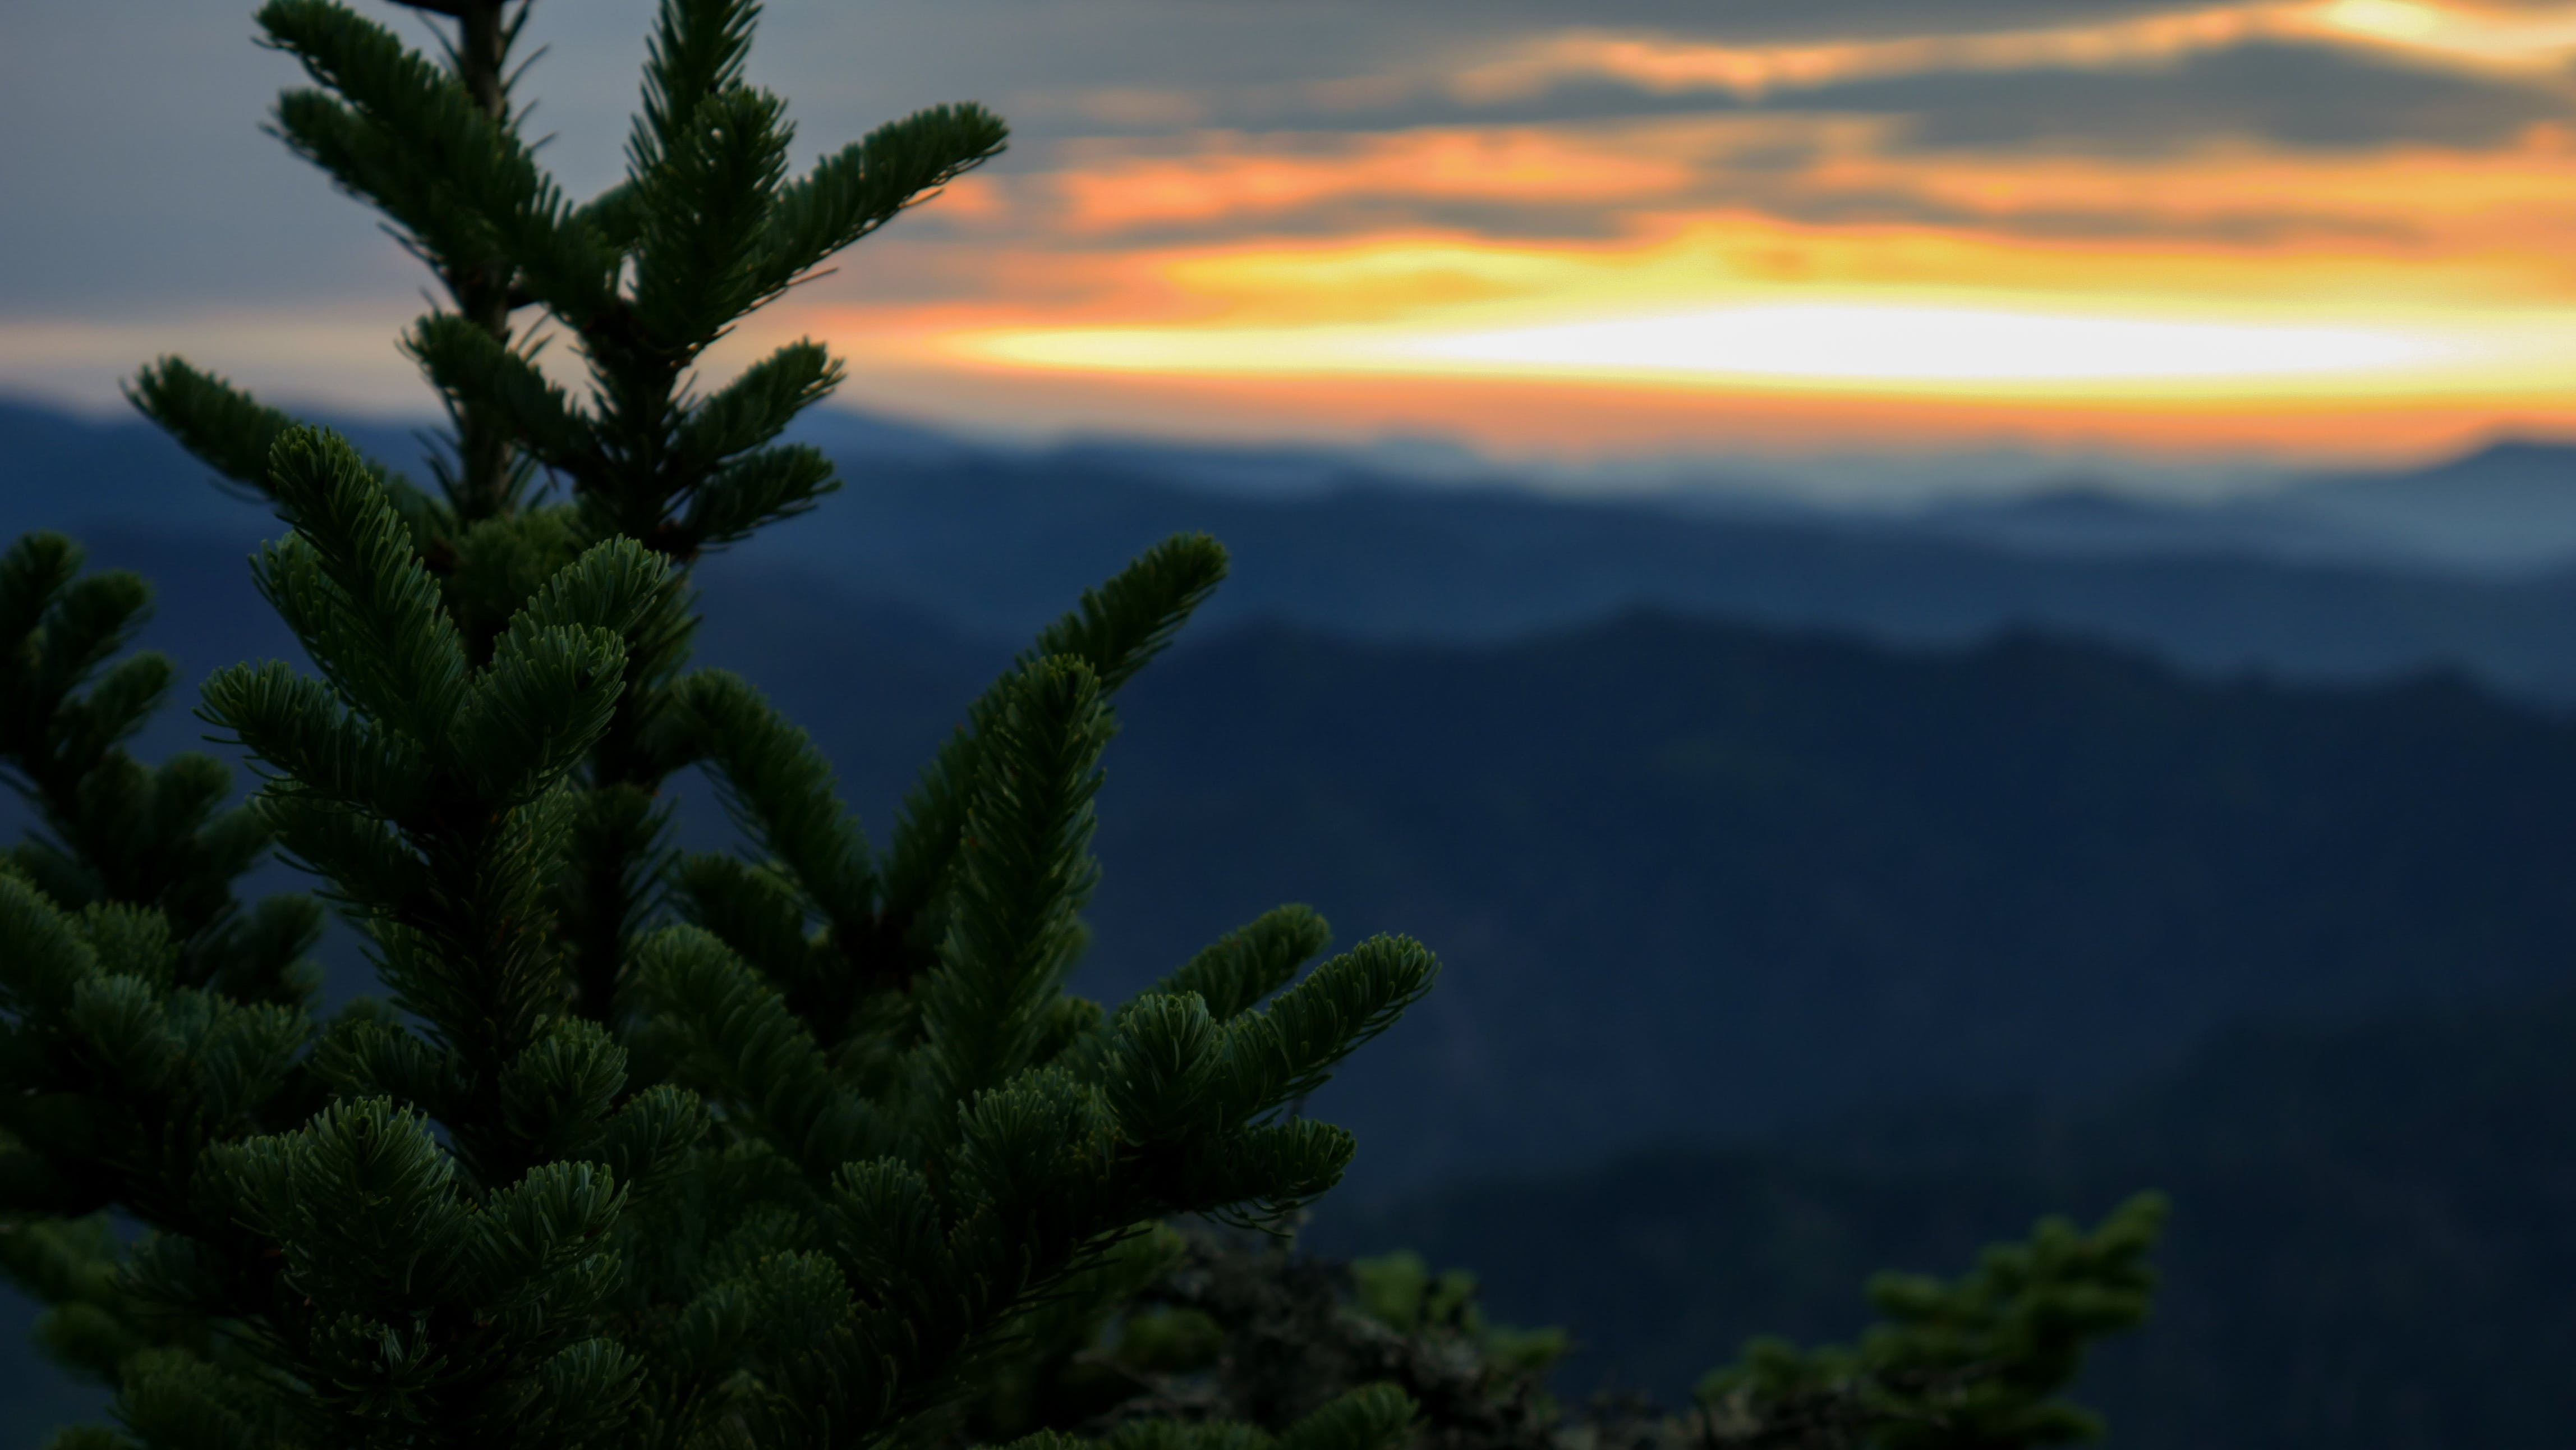 Pine Tree during Sunset Selective Focus Photography